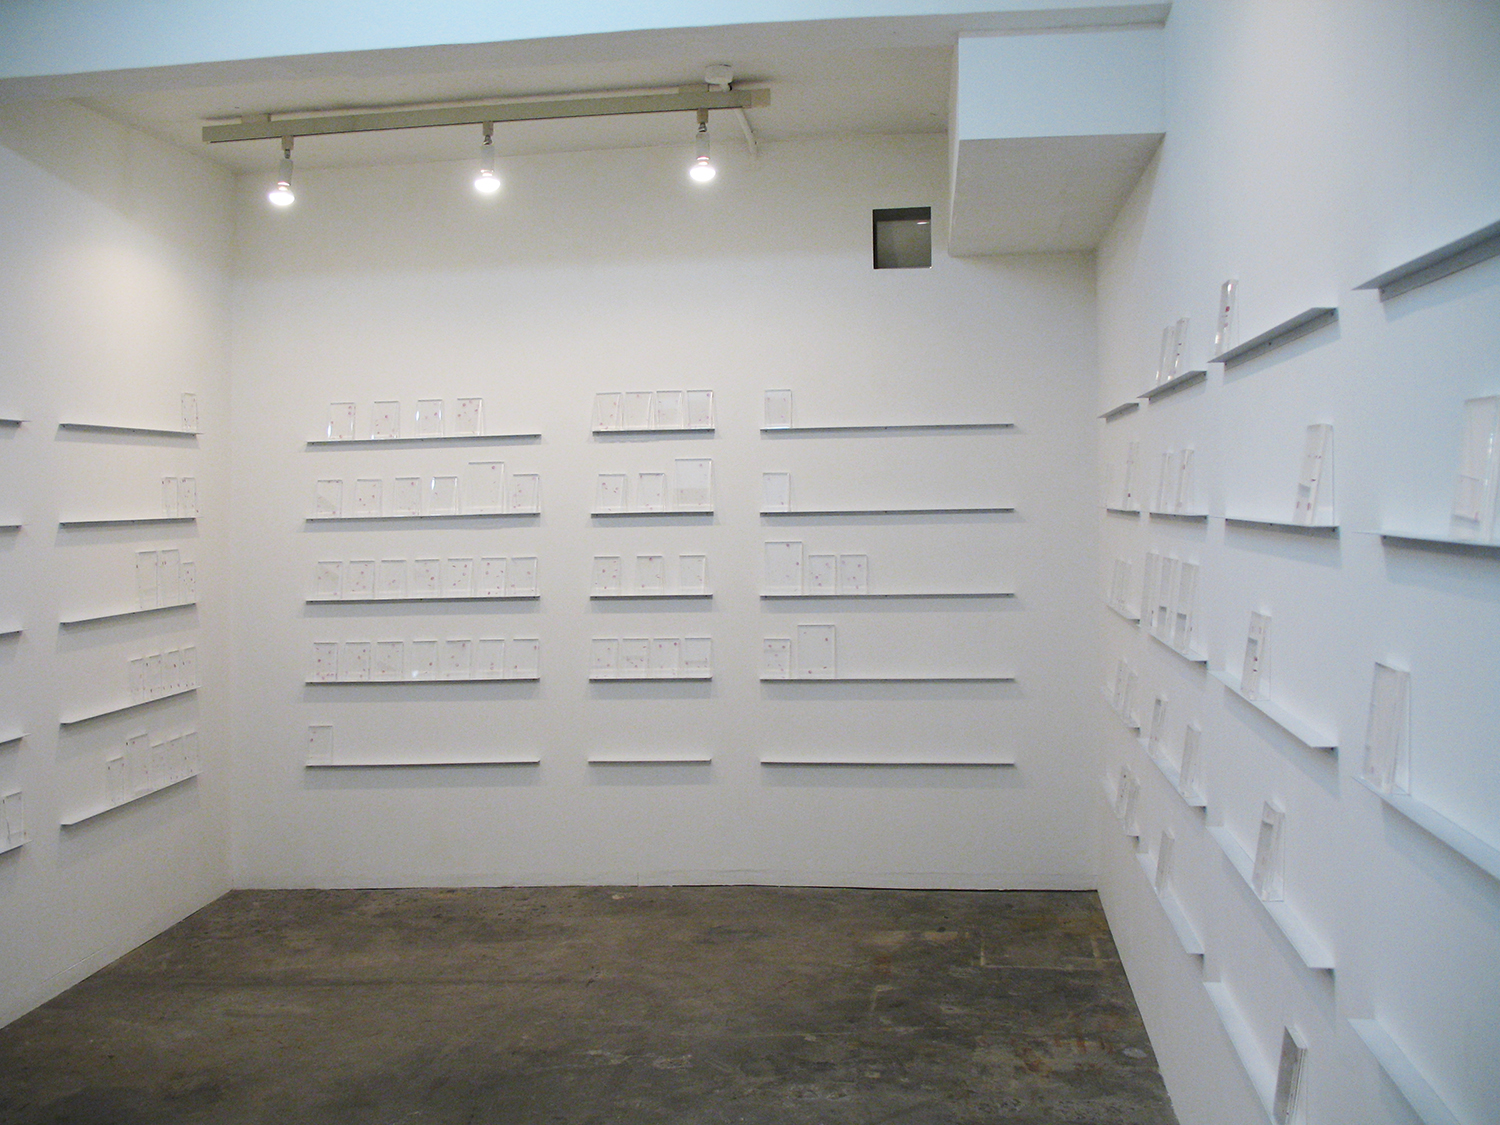 Installation view -  bookshelf, acrylic and transfer seal, 15.3 x 10.5 x 1.6 and 20.8 x 14.8 x 1.6 cm each, 2008